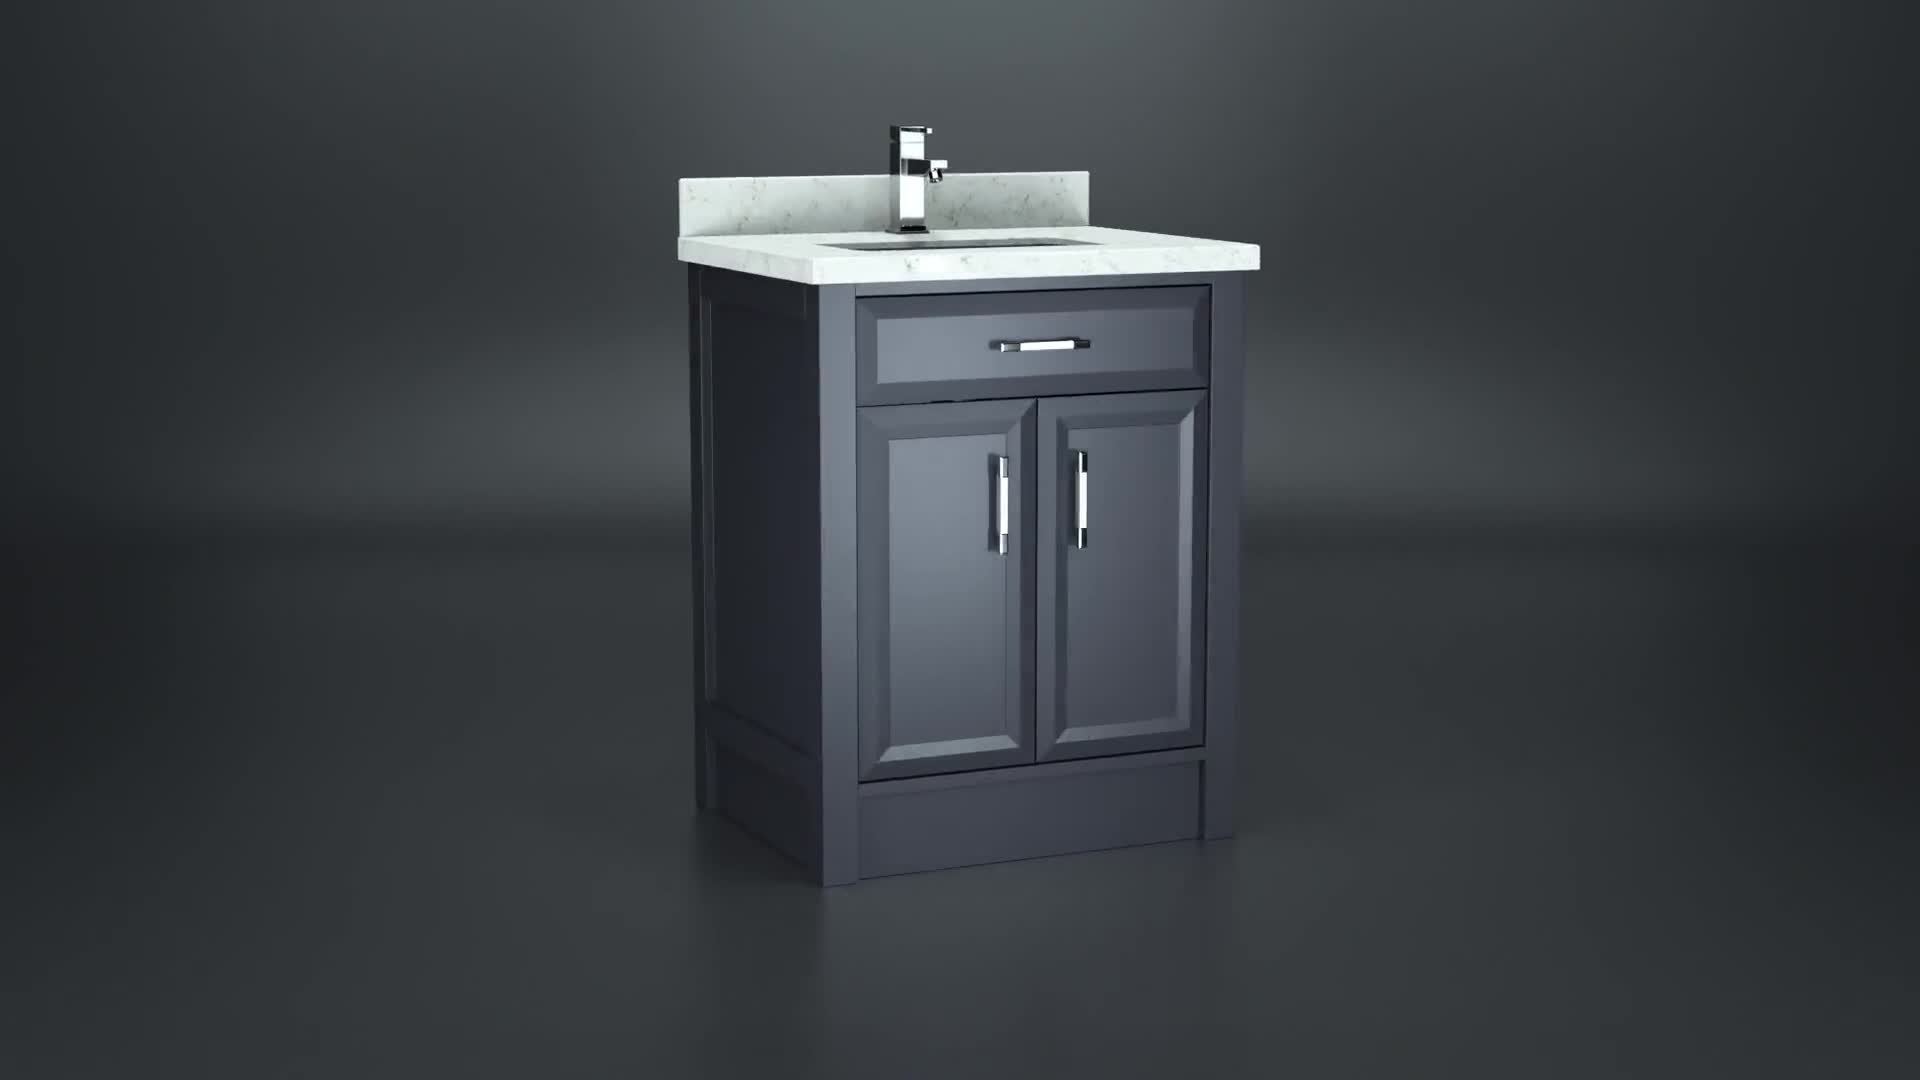 Spa Bathe Calumet 28 In White Undermount Single Sink Bathroom Vanity With White With Grey Veins Engineered Stone Top In The Bathroom Vanities With Tops Department At Lowes Com